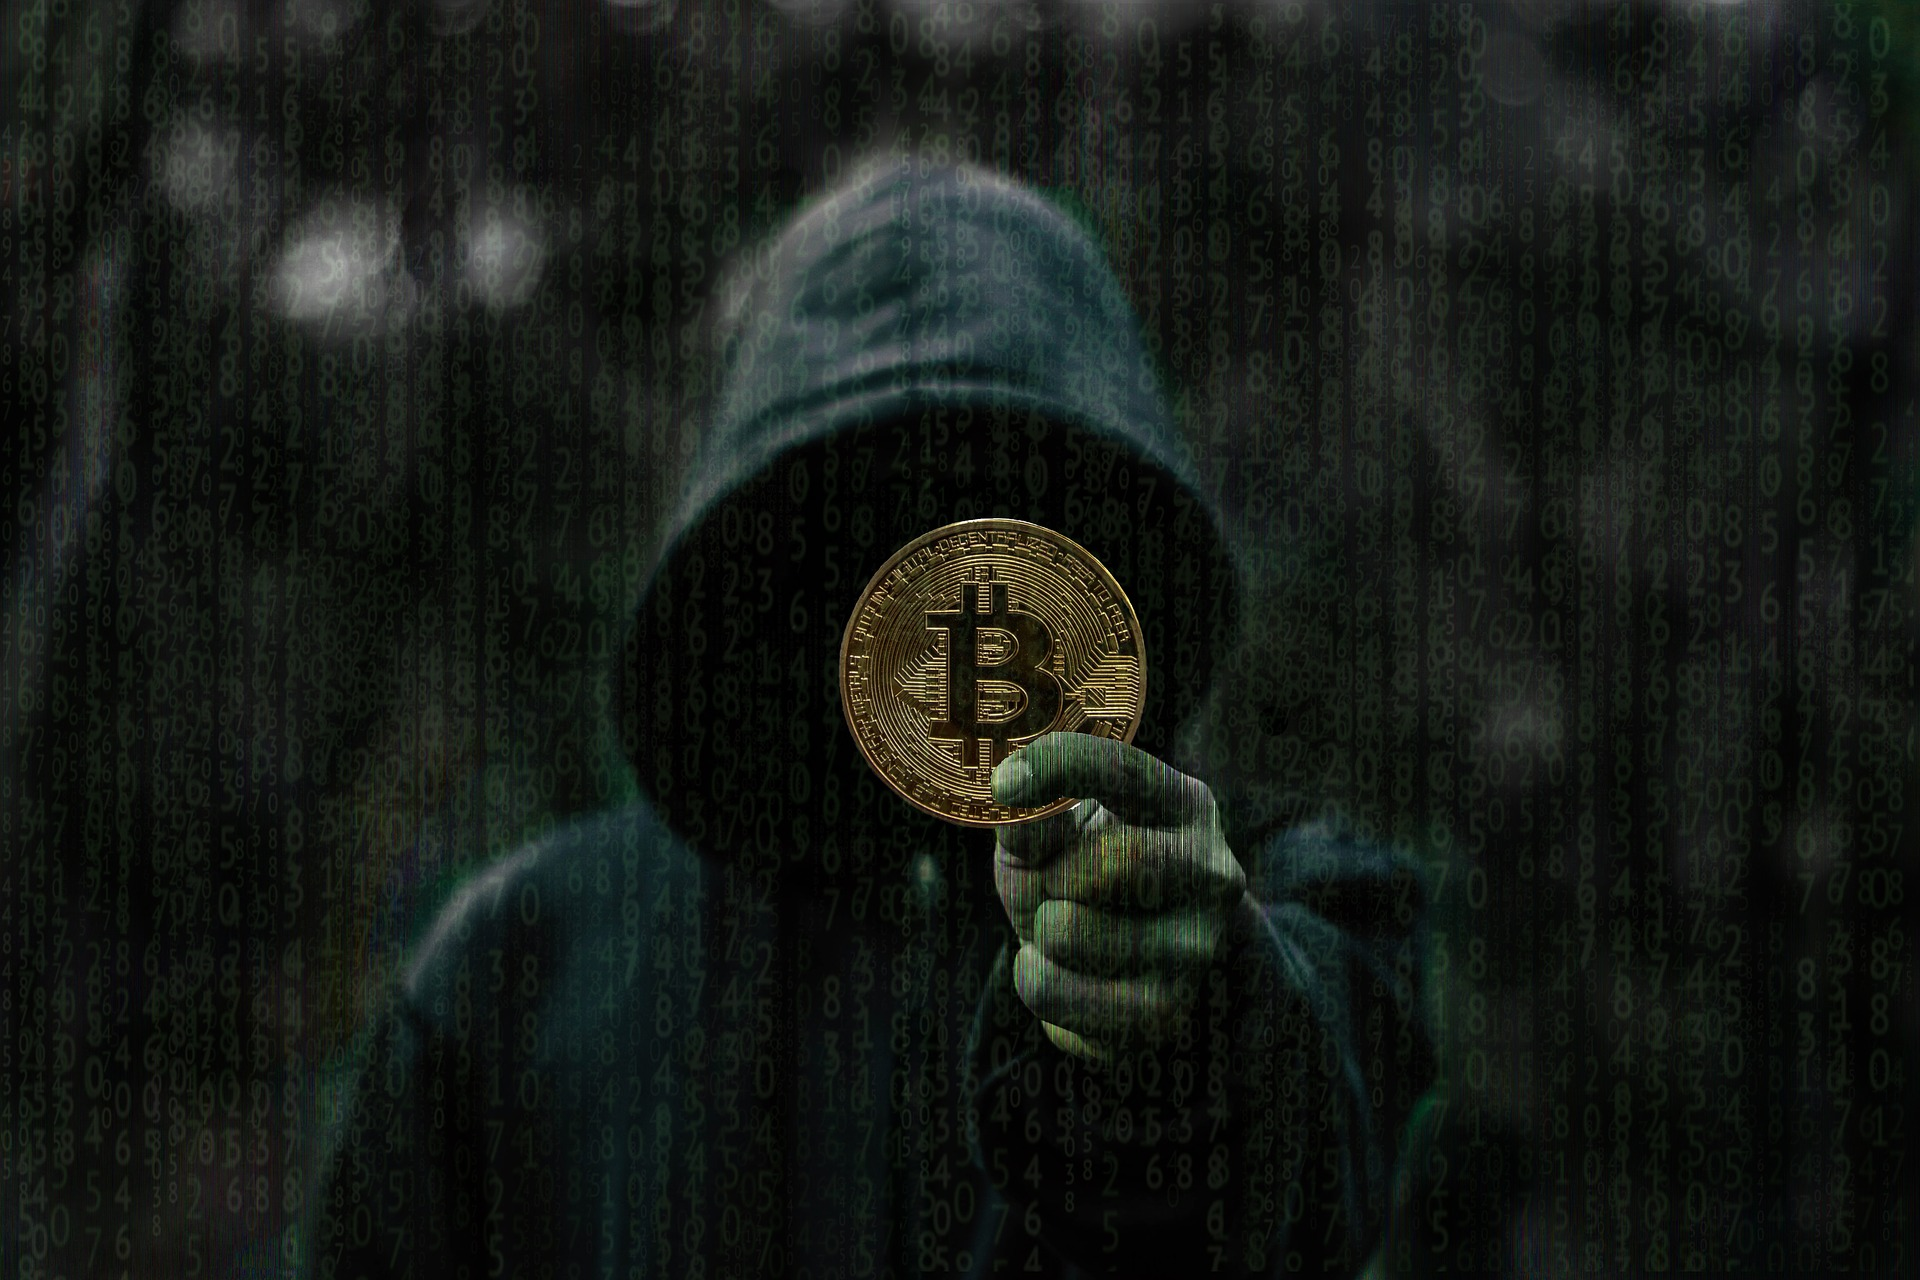 Bitcoin Fraudsters On The Rise Using WHO Addresses To Solicit Fake COVID-19 Donations